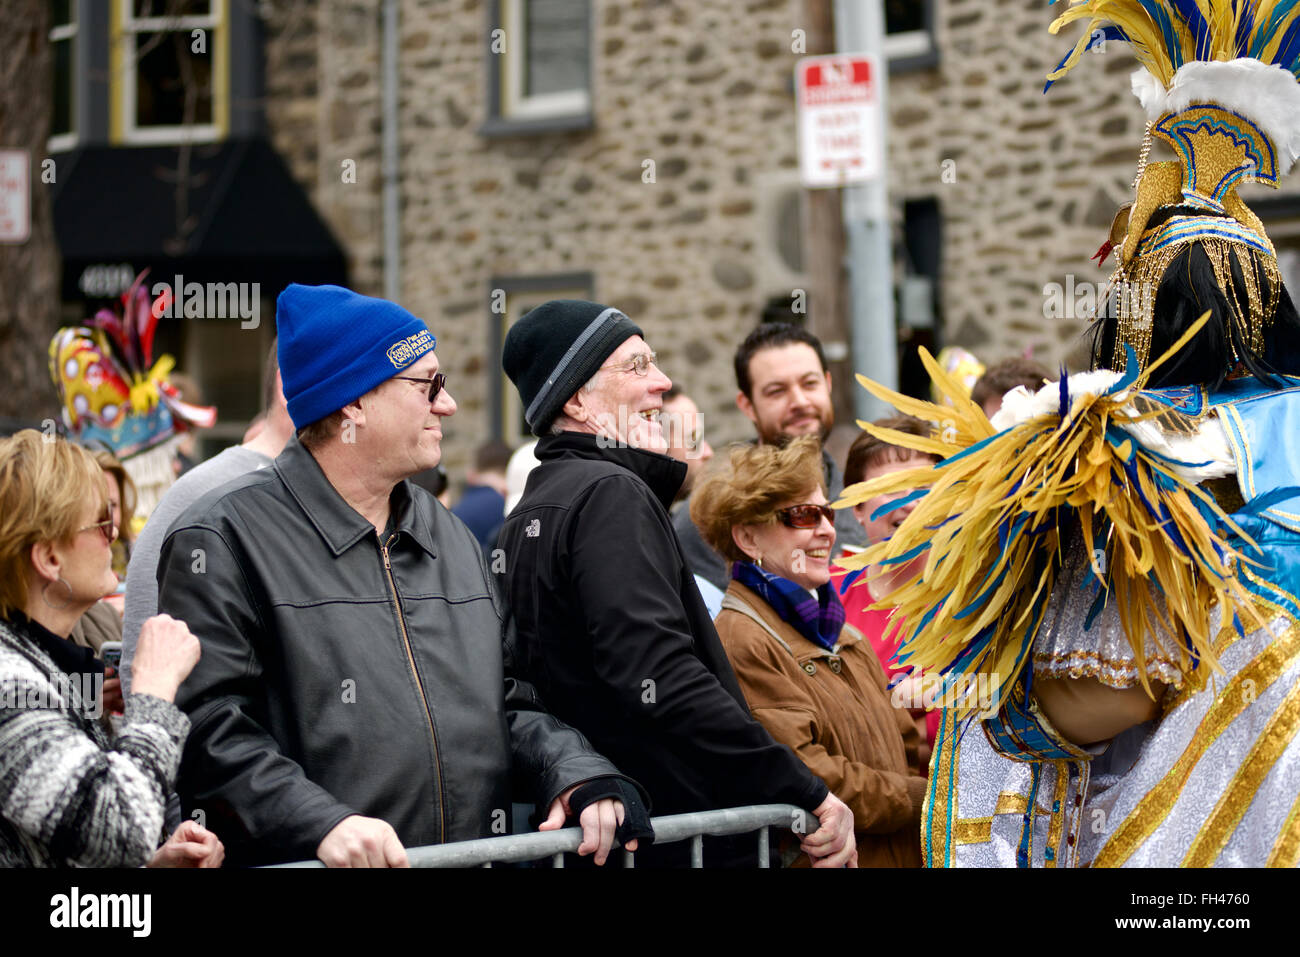 2nd annual Mummers' Mardi Gras parade brings many to Manayunk to see Mummers of the String Band Association - Stock Image